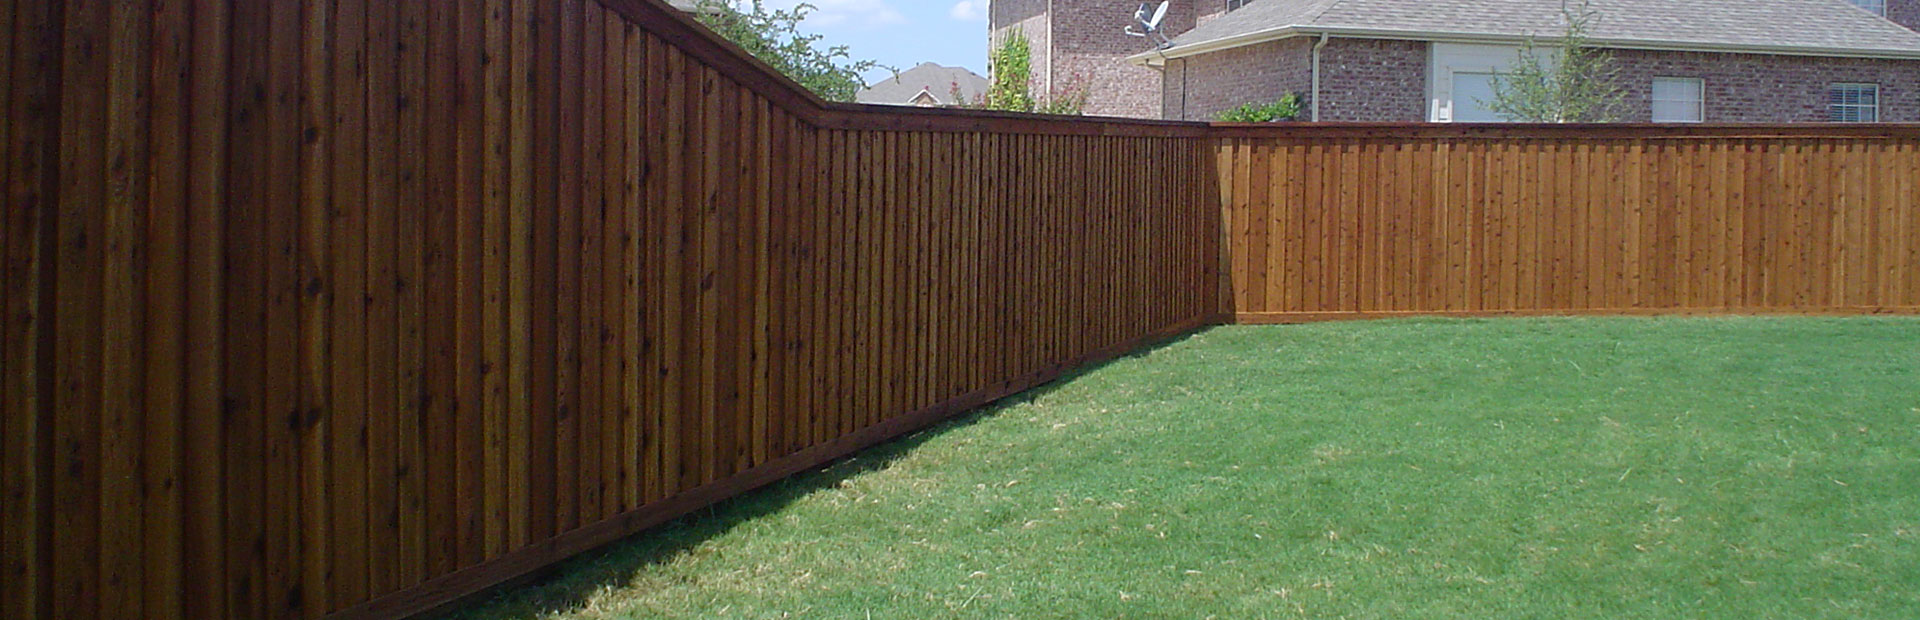 New Cedar Fences - Denton, Texas